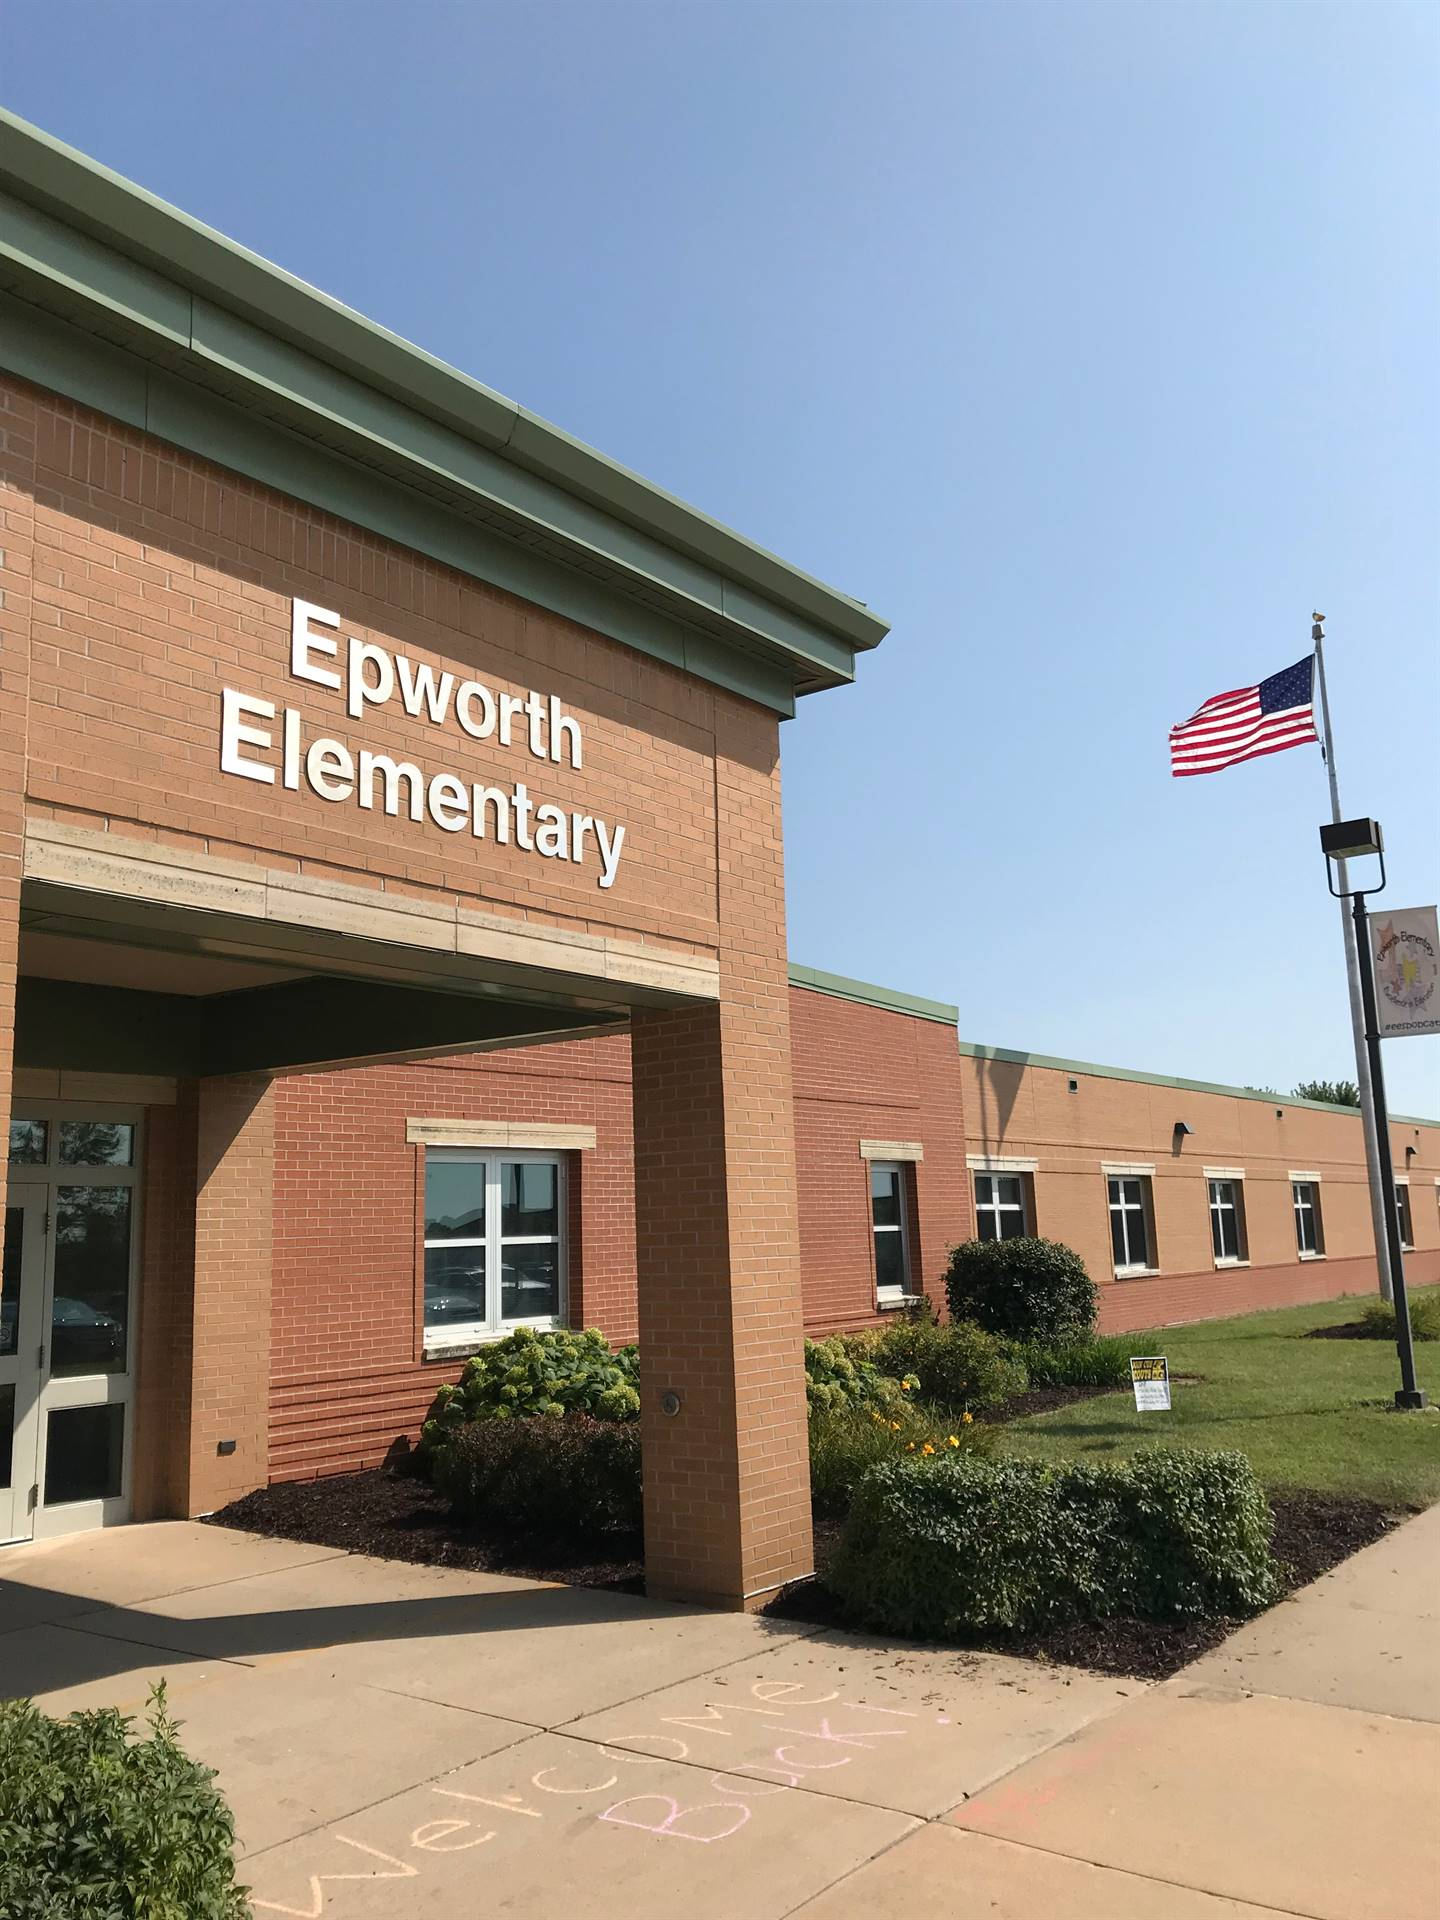 Epworth Elementary School